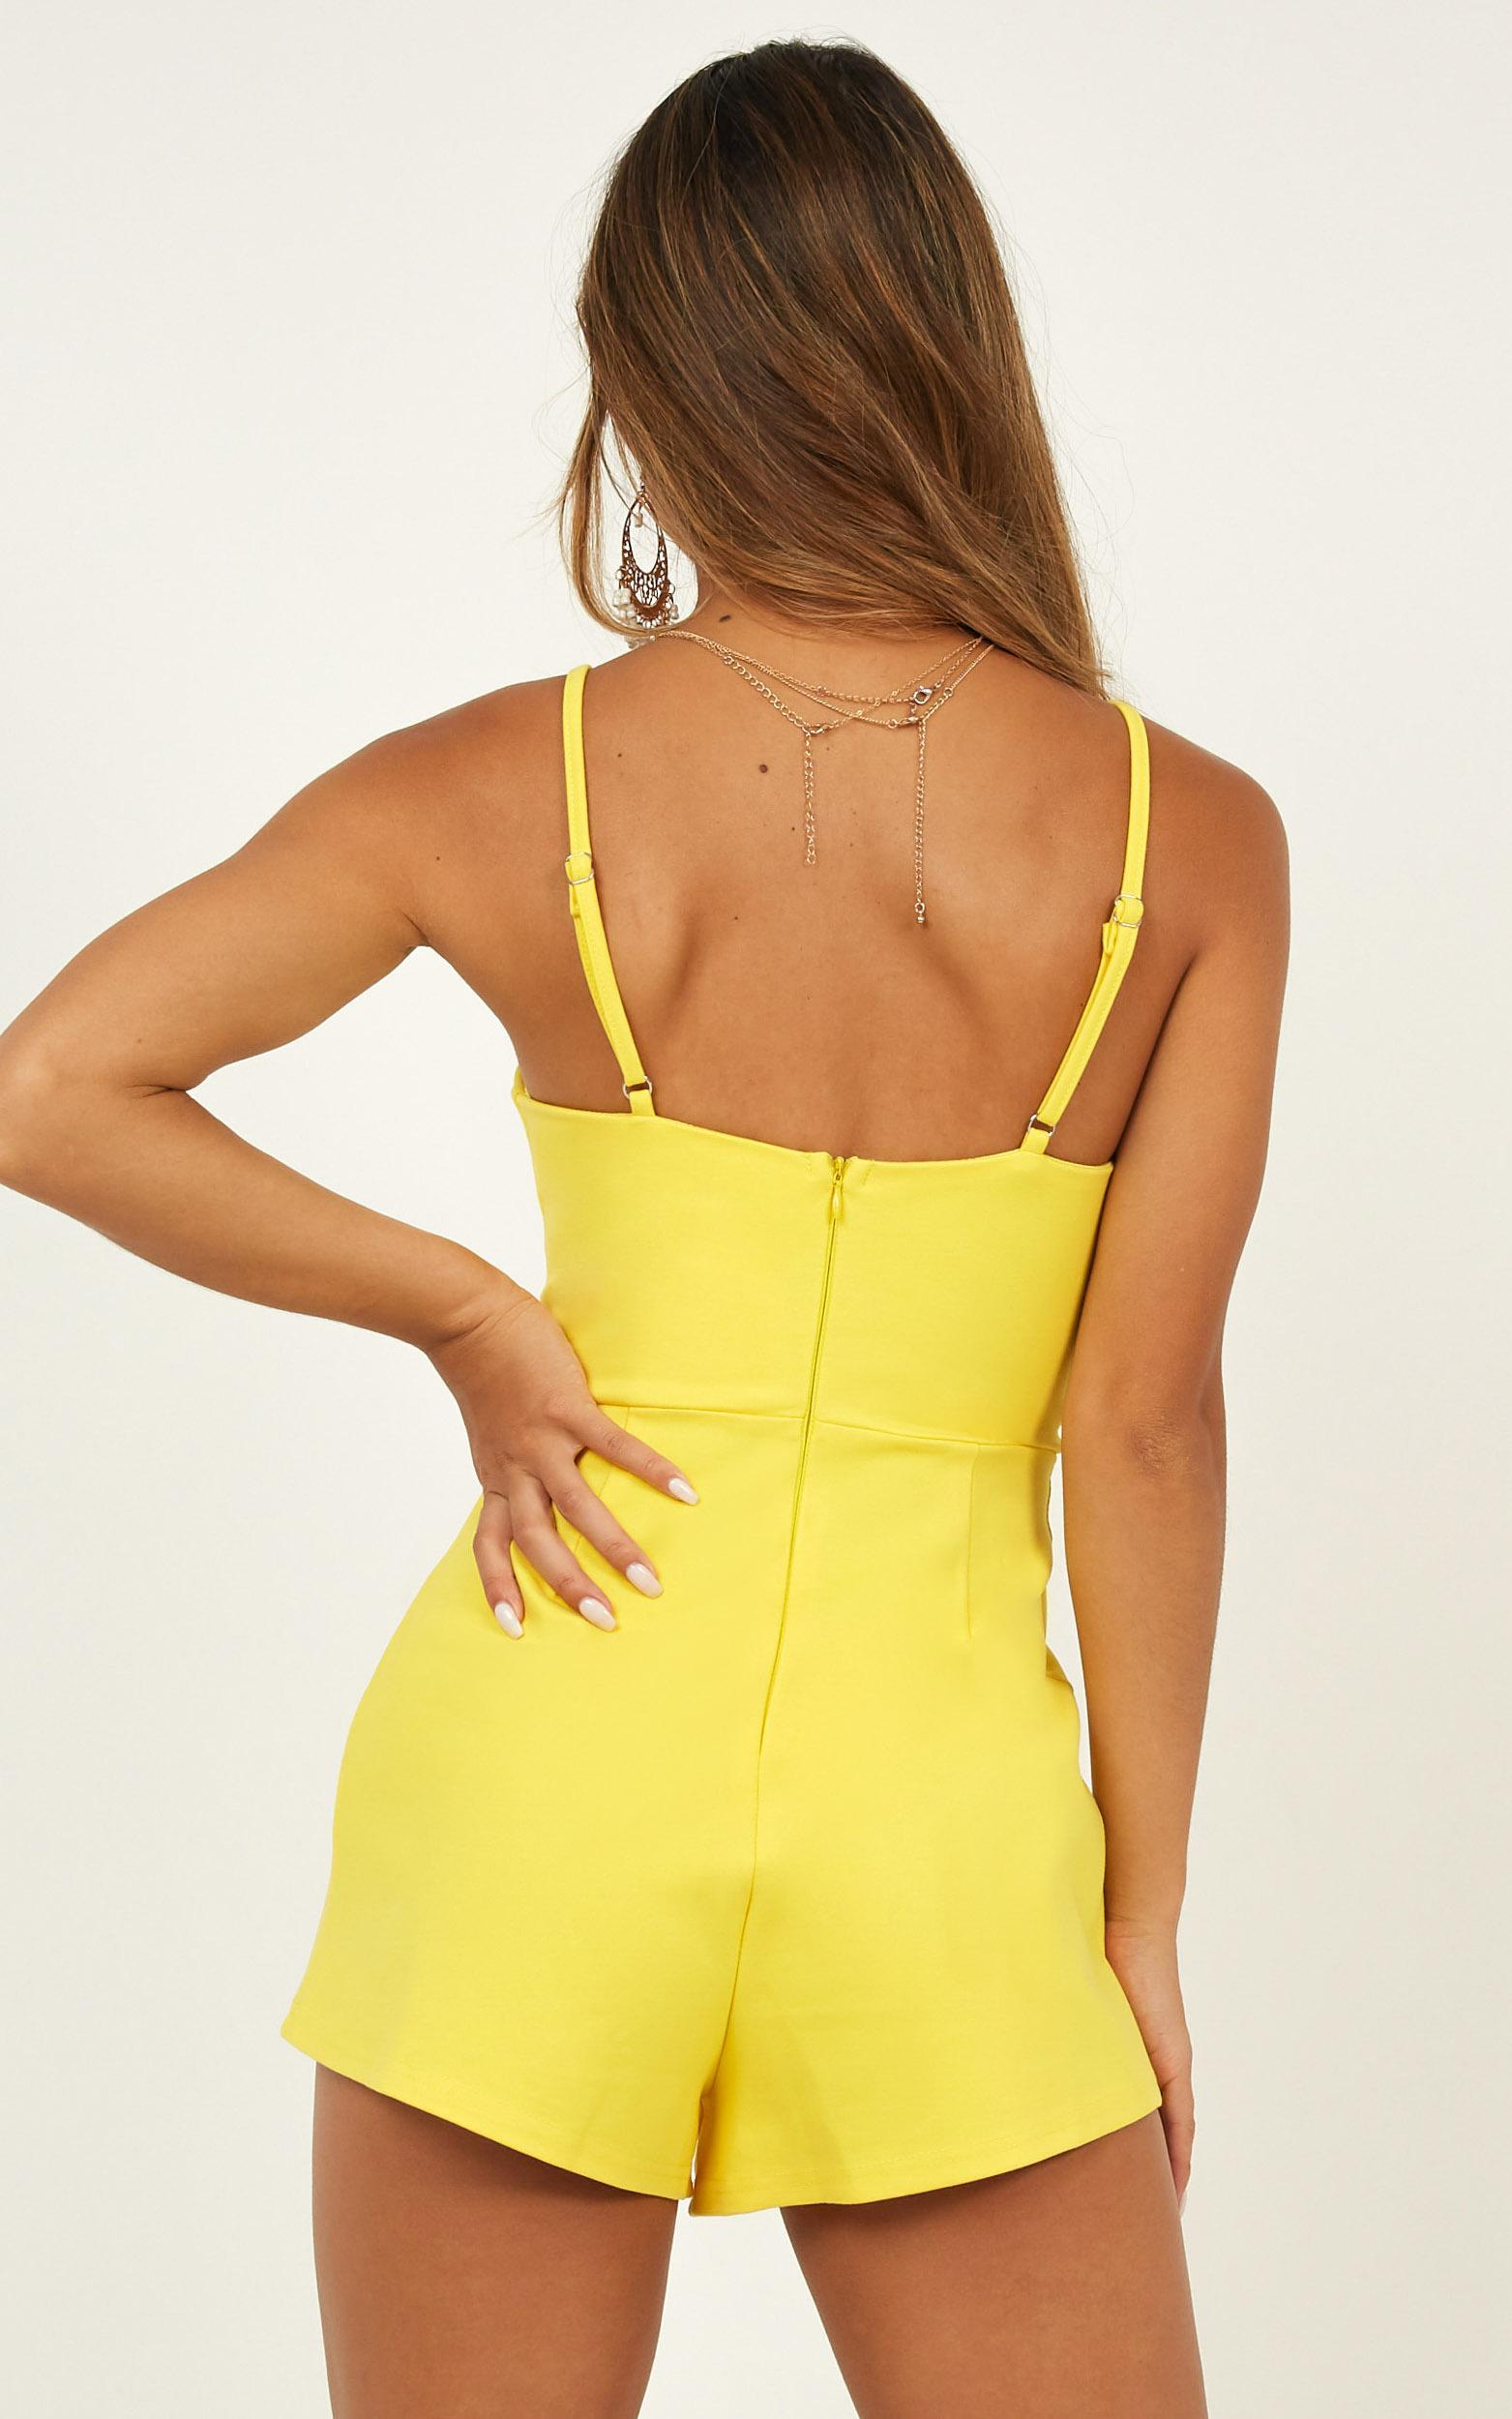 The Only Exception Playsuit in mango - 20 (XXXXL), Yellow, hi-res image number null